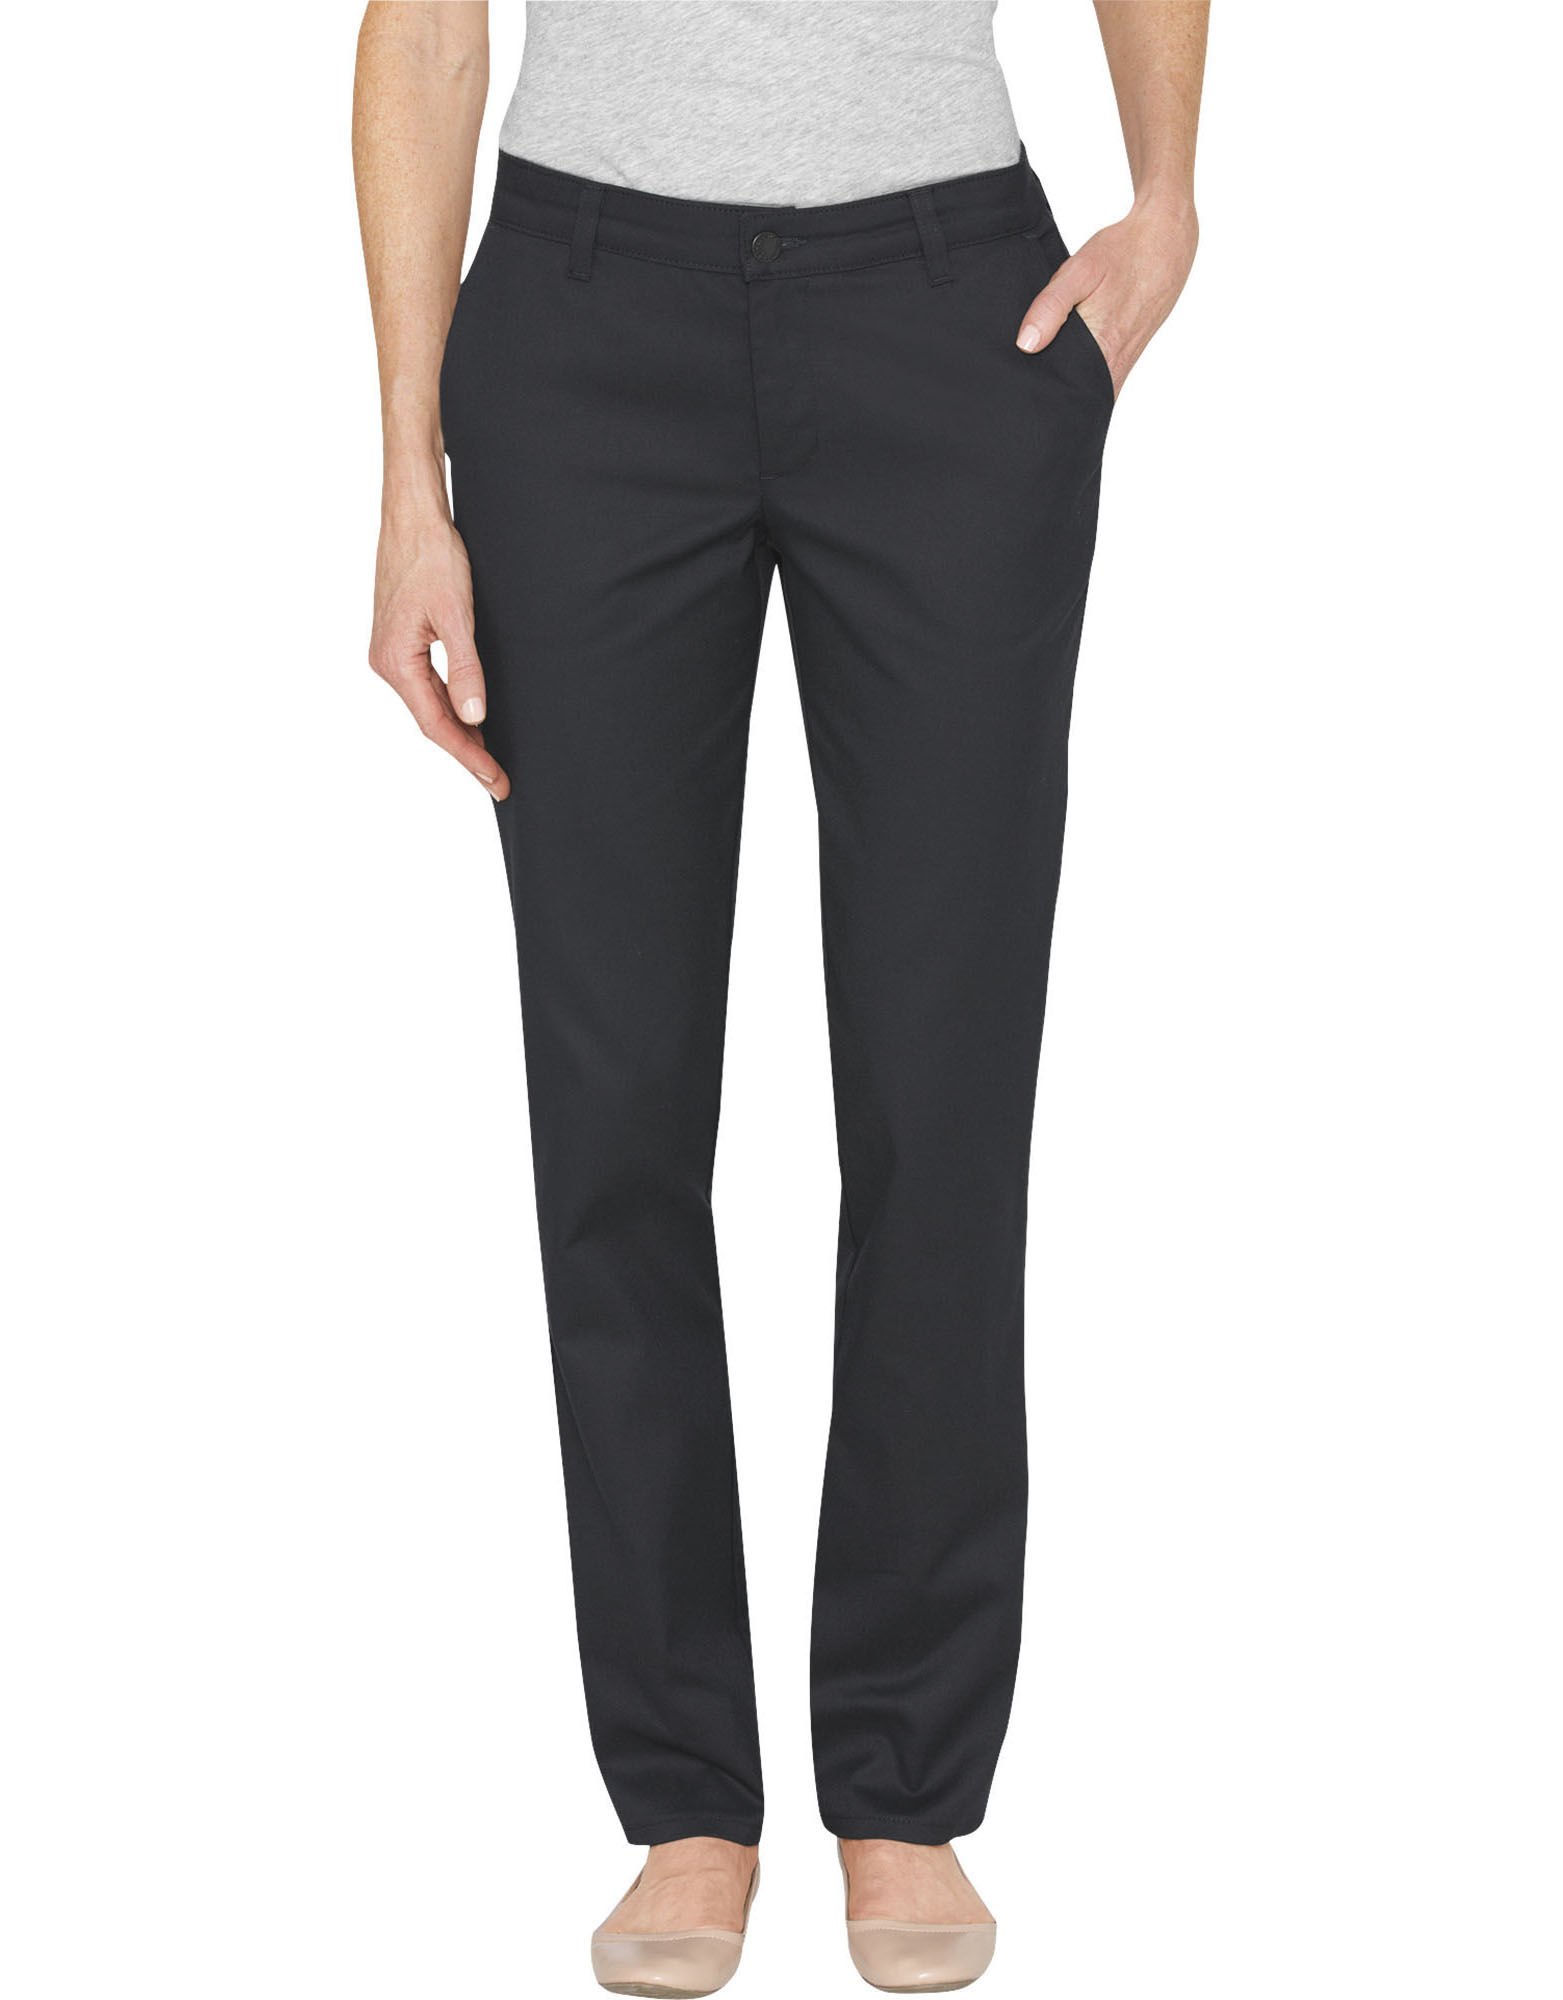 Women's Twill Pants | Women's Pants | Dickies